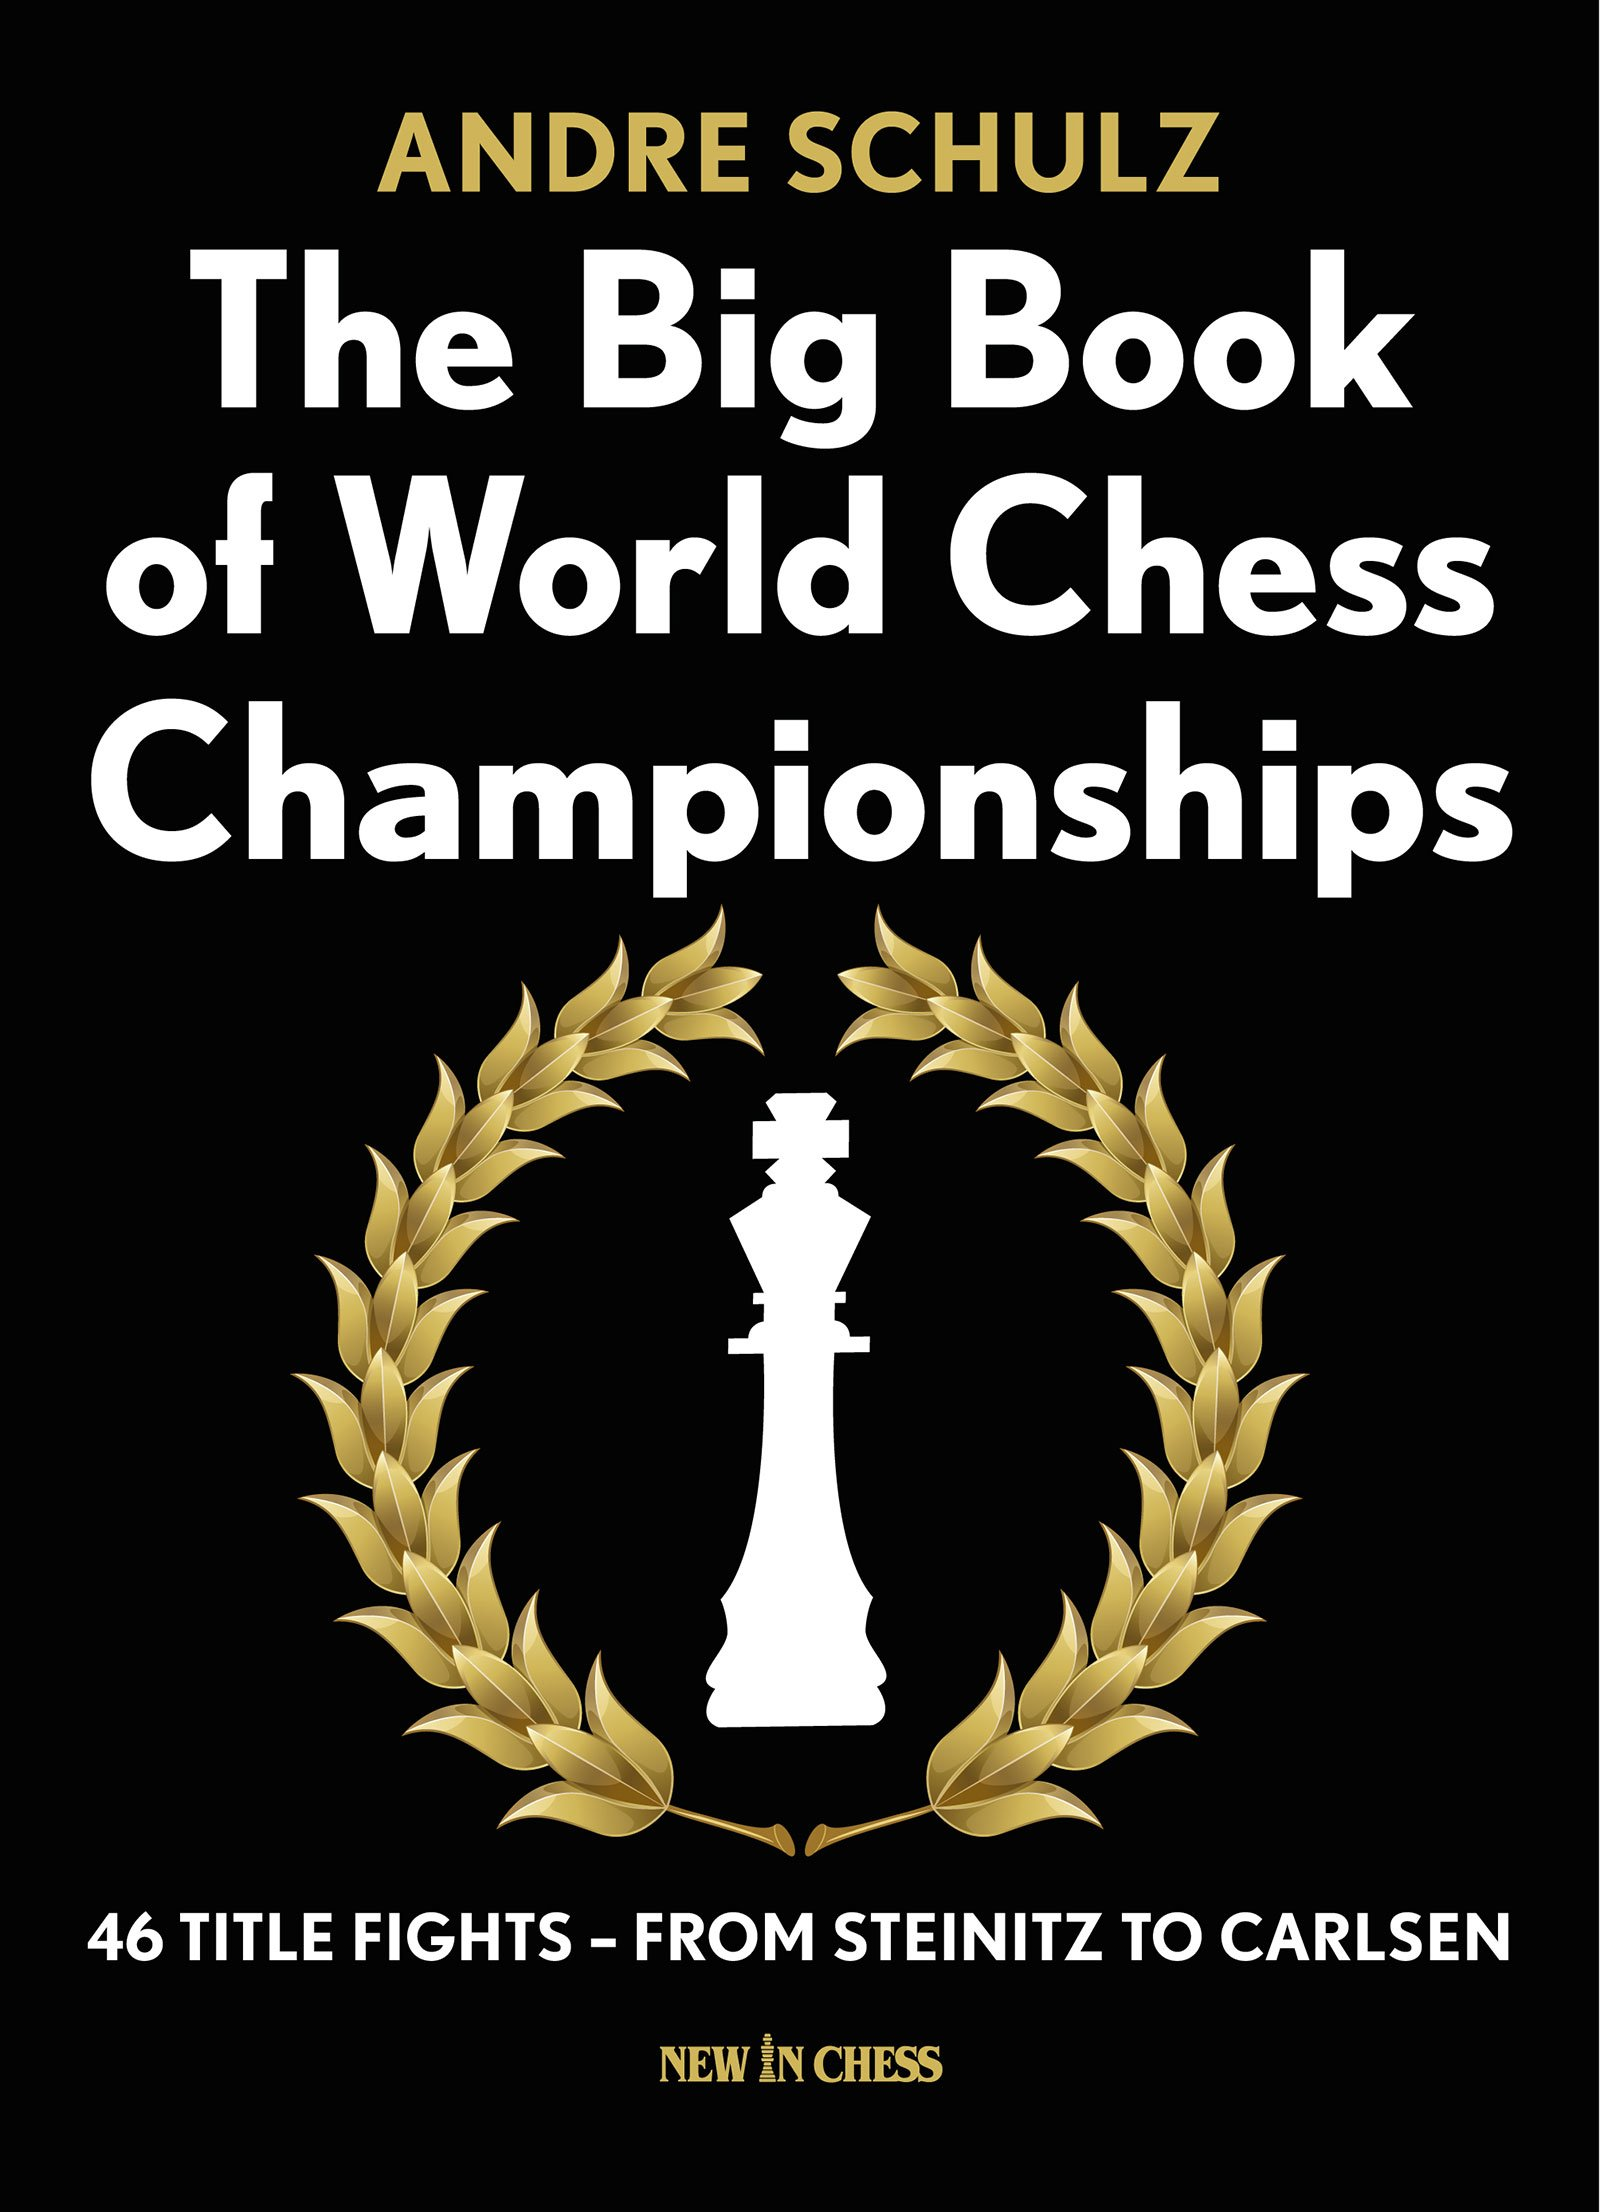 The big book of world chess championships 46 title fights from the big book of world chess championships 46 title fights from steinitz to carlsen andre schulz 9789056916350 amazon books biocorpaavc Gallery